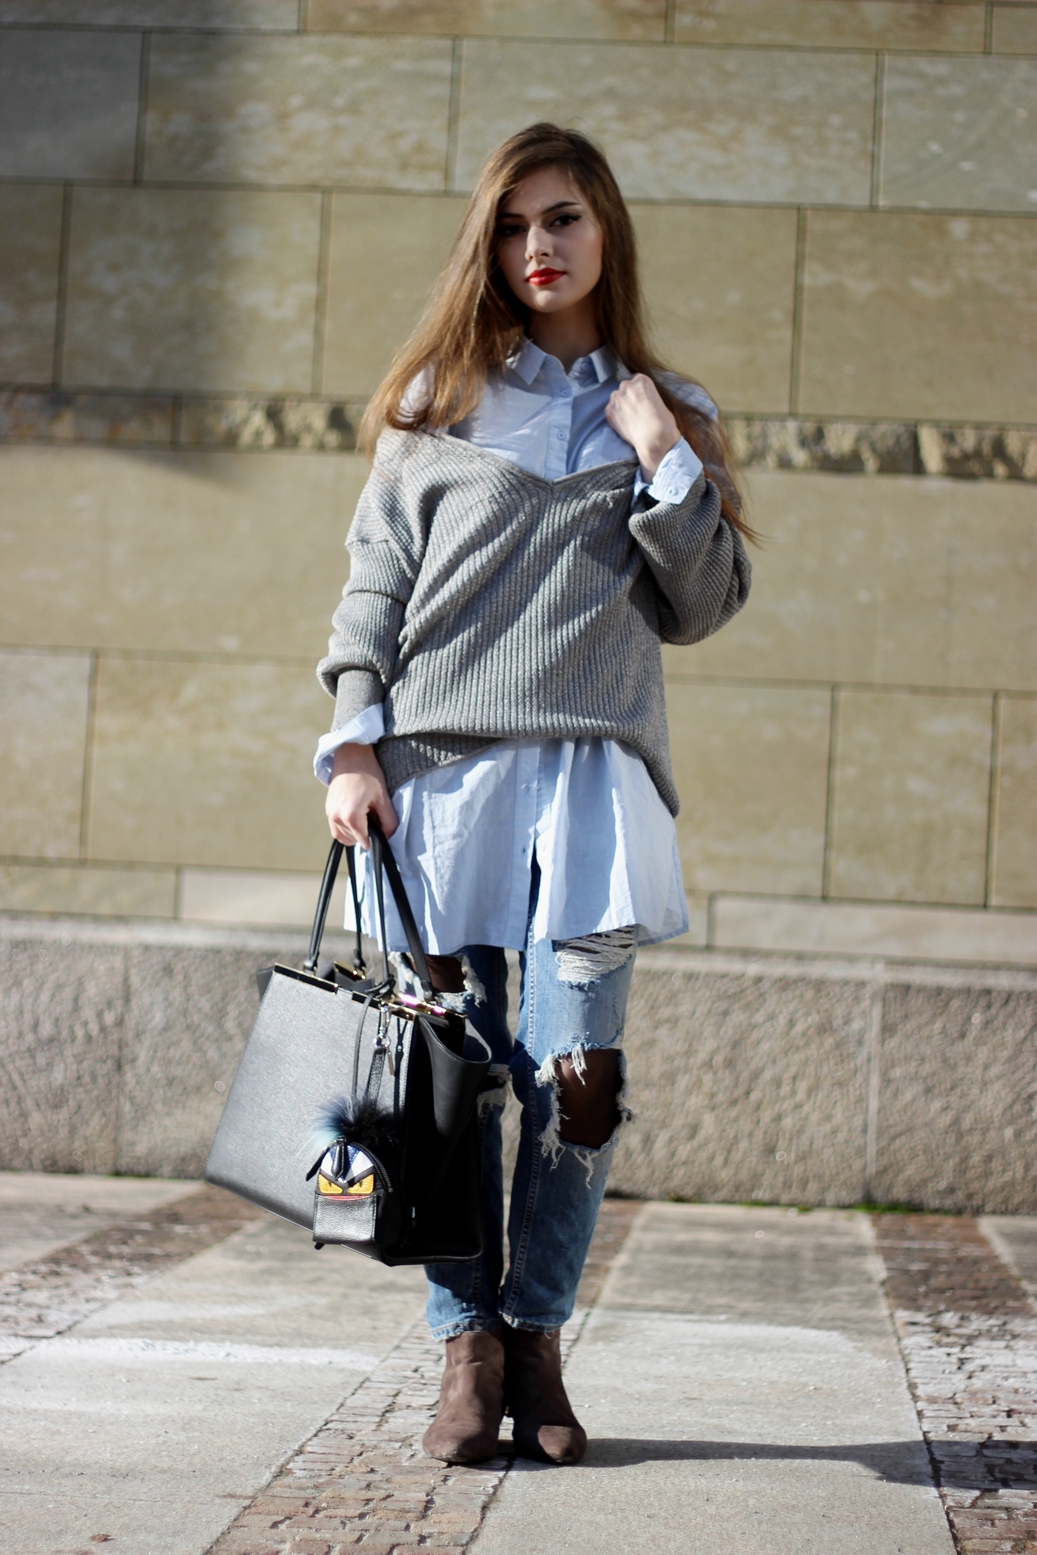 zara-fendi-streetstyle-outfit-fashion-blog-germany-munich